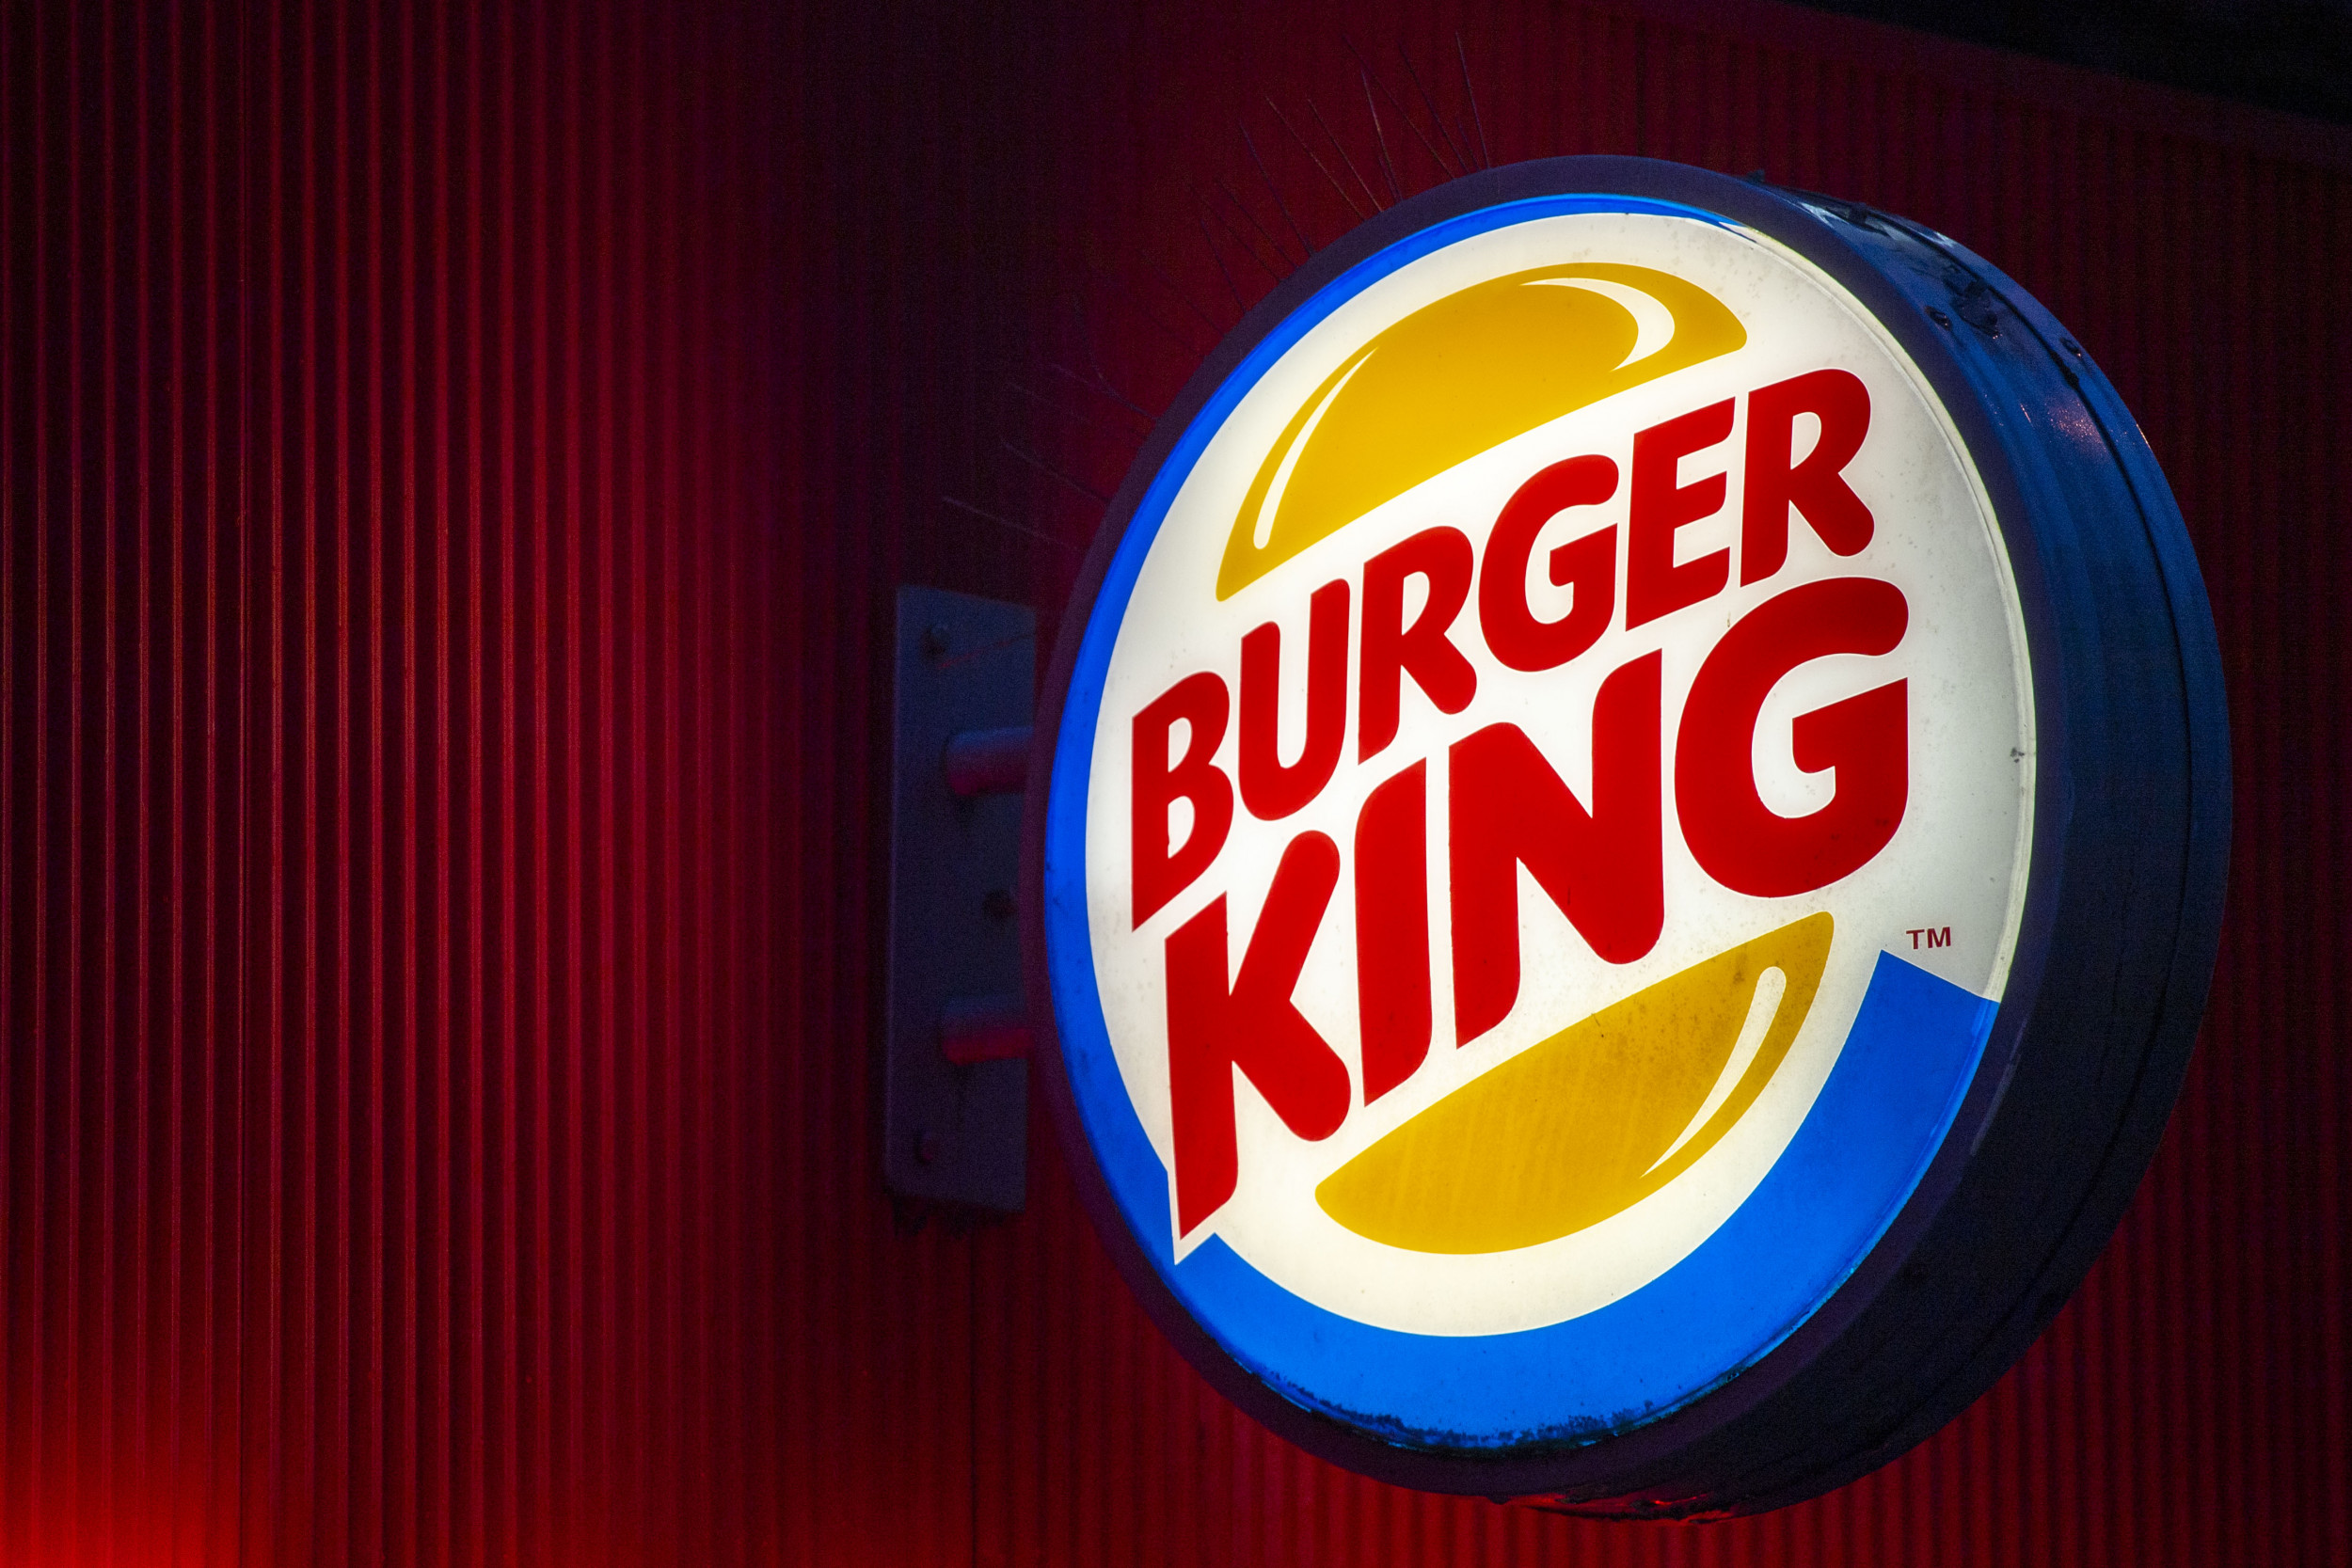 Man Alleges He Was Fired by Burger King Over Colostomy Bag